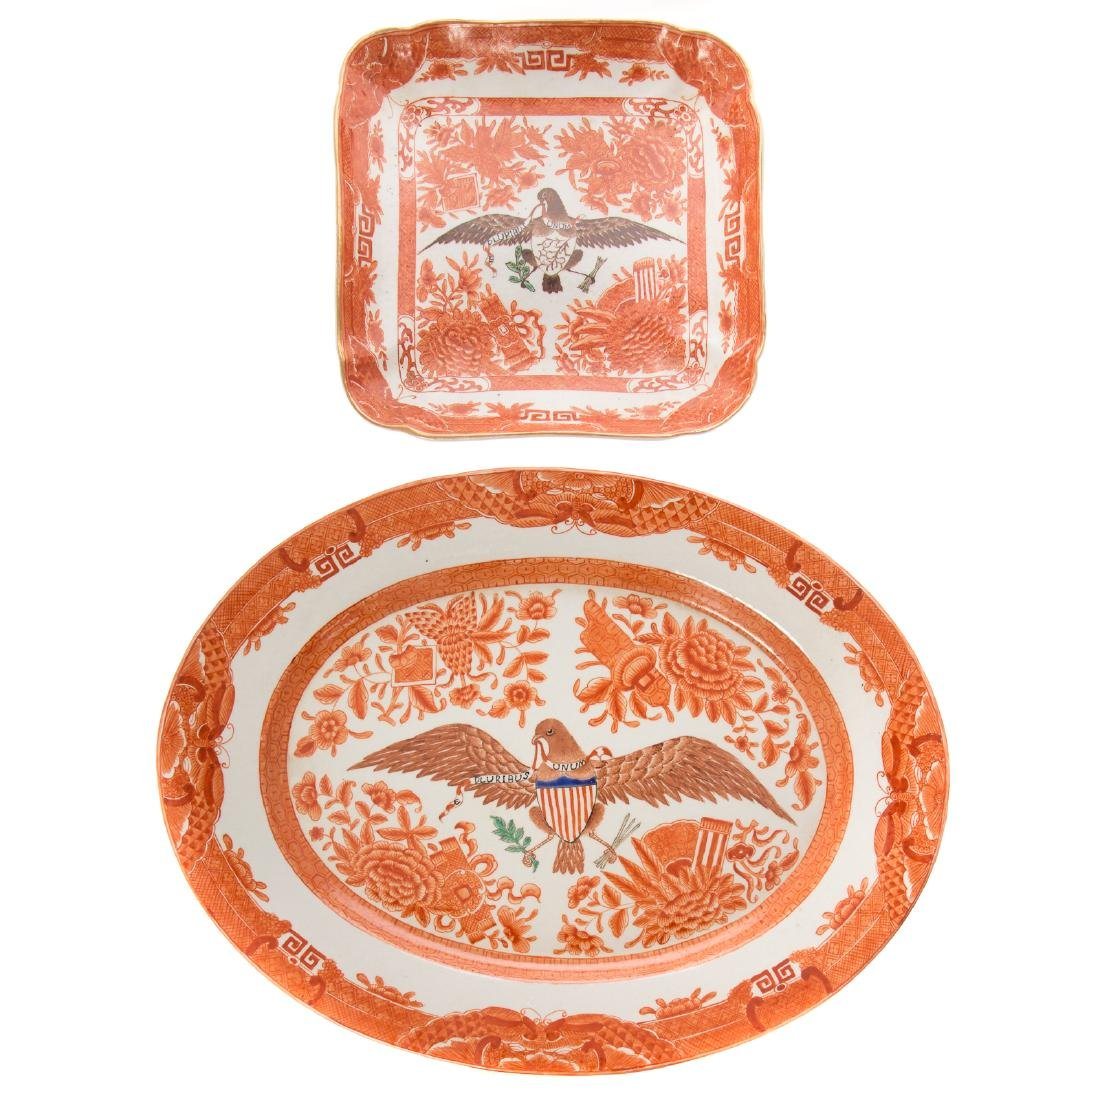 Two Chinese Export style orange Fitzhugh articles